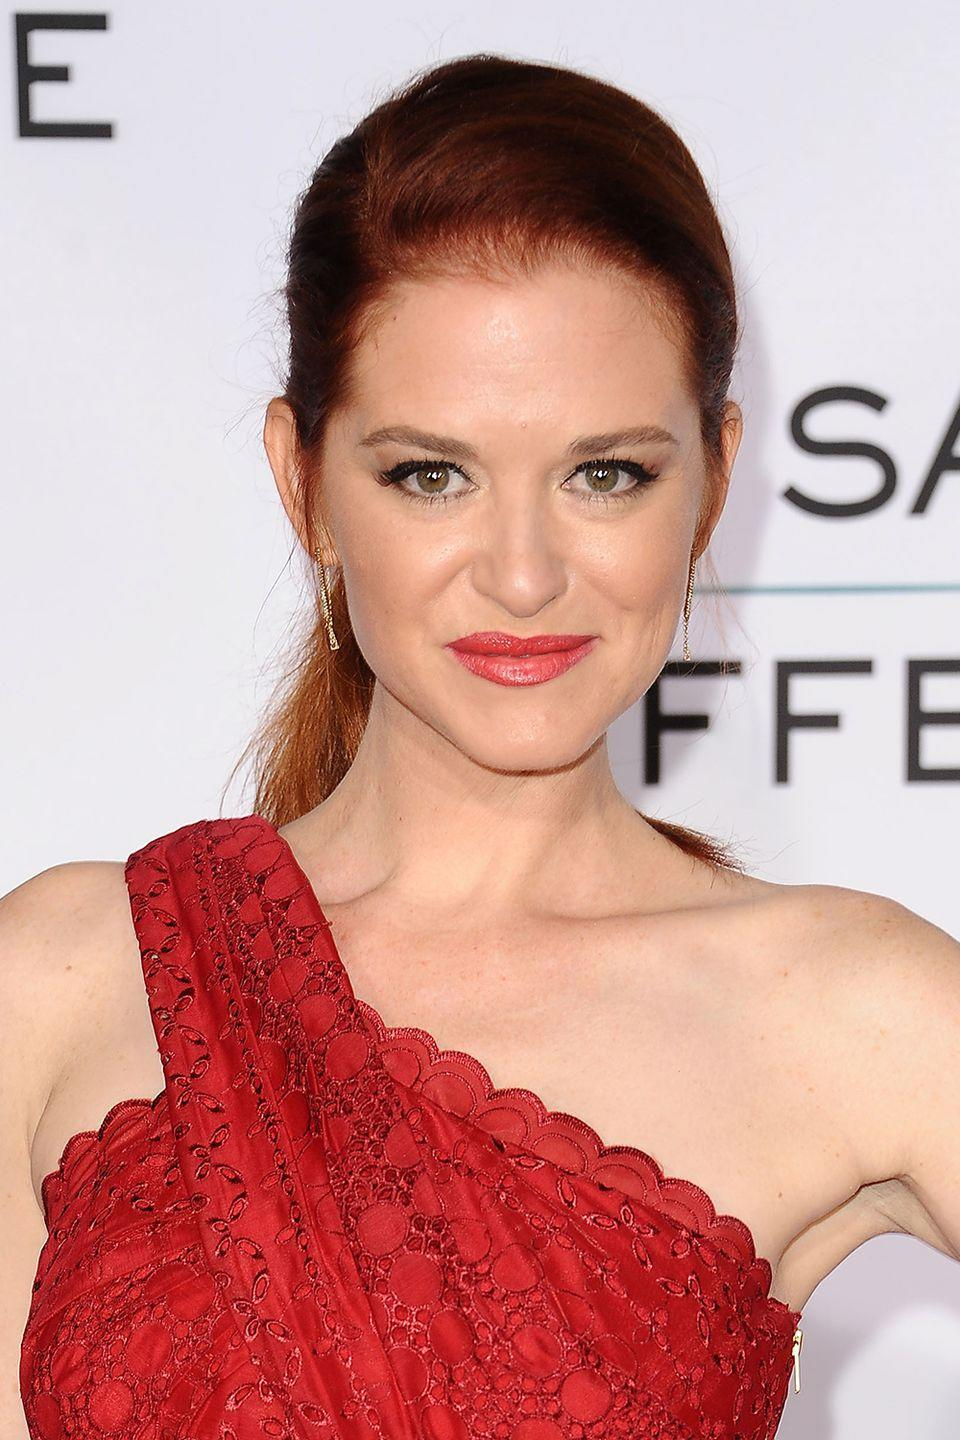 """<p>Sarah Drew could easily relate to her <em>Grey's Anatomy </em>character, April, the devout Christian who refrains from pre-marital sex. """"For April, the first thing that was revealed was she was a virgin,"""" explained Sarah in <a href=""""http://www.foxnews.com/entertainment/2014/03/04/sarah-drew-why-saved-myself-for-marriage.html"""" rel=""""nofollow noopener"""" target=""""_blank"""" data-ylk=""""slk:an interview"""" class=""""link rapid-noclick-resp"""">an interview</a>. """"I waited until I was married to have sex so I understood April's motivations. The writers thought it would be a really cool and interesting story to tell that isn't seen too often.""""</p>"""